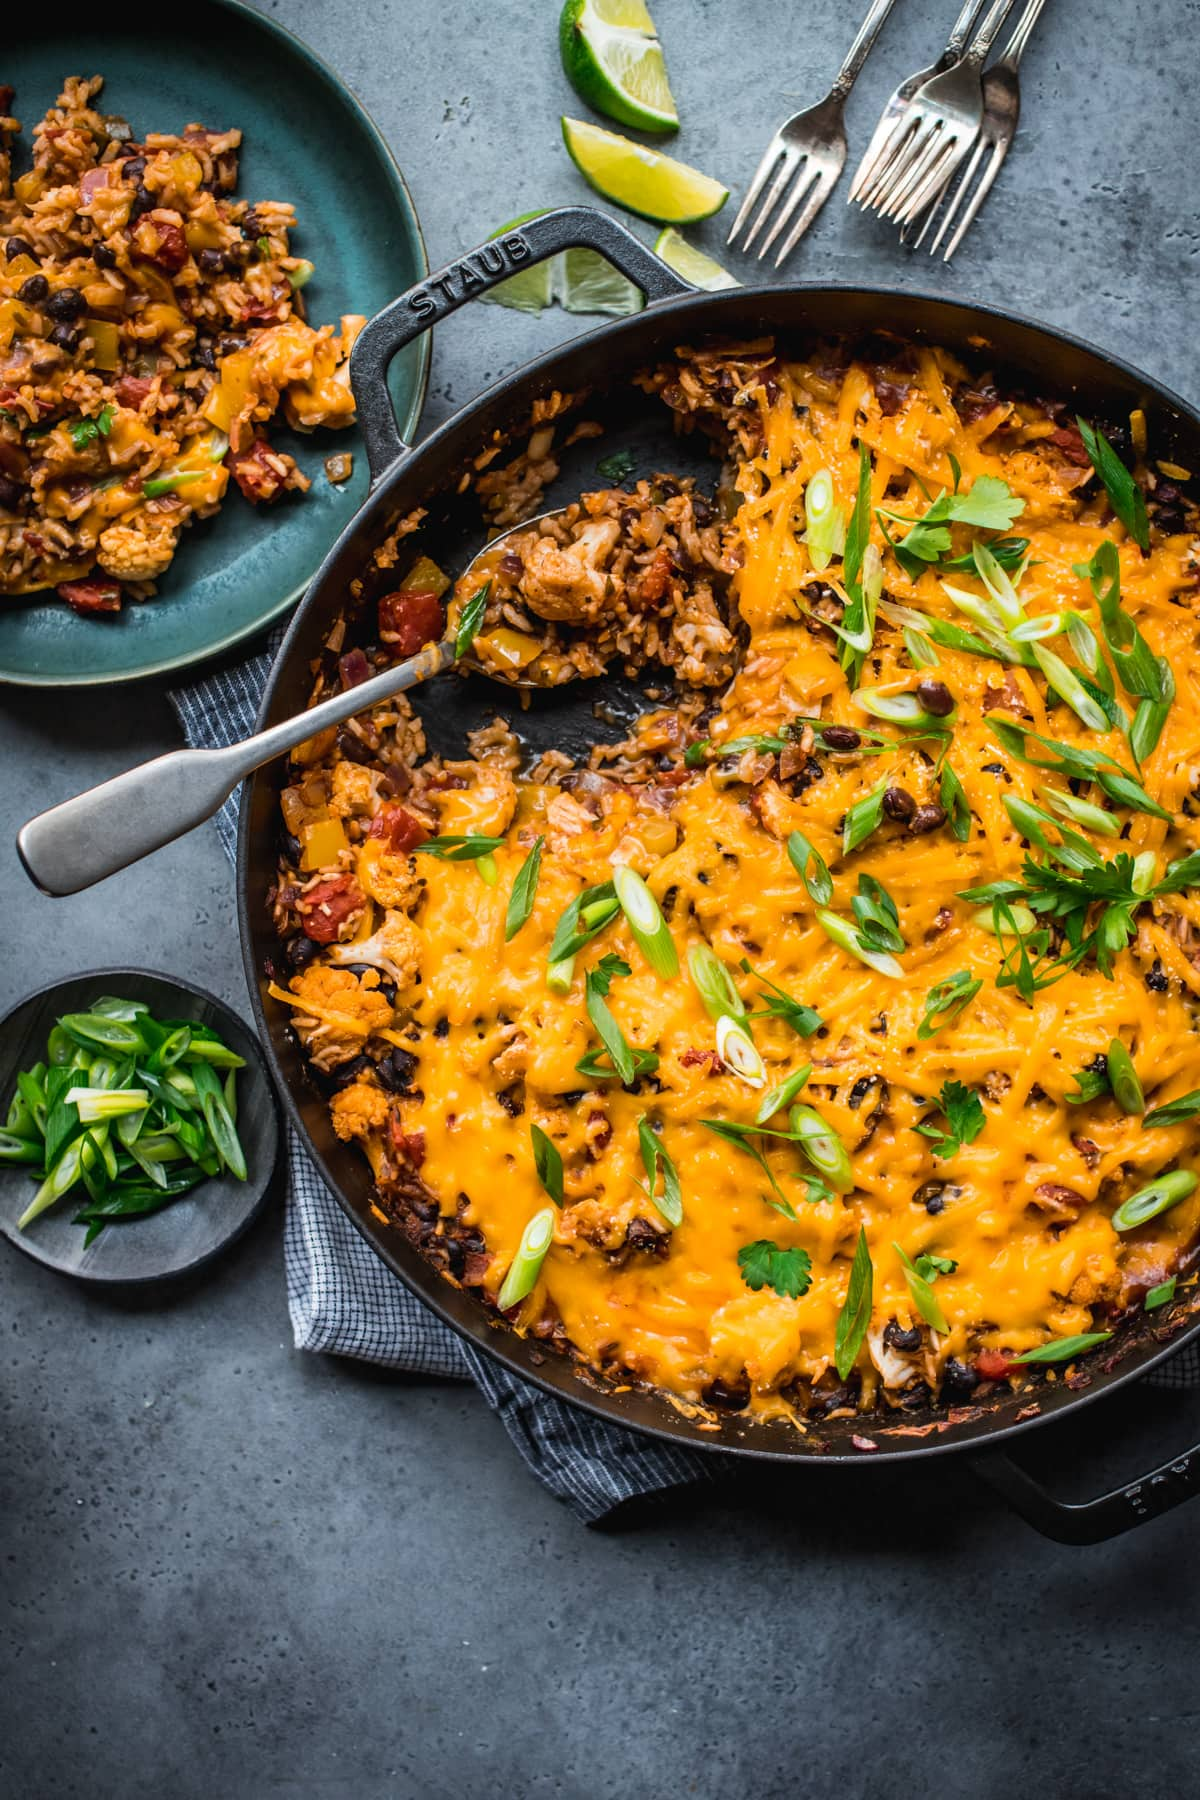 overhead view of vegan cheesy cauliflower bake with black beans and rice in large skillet.